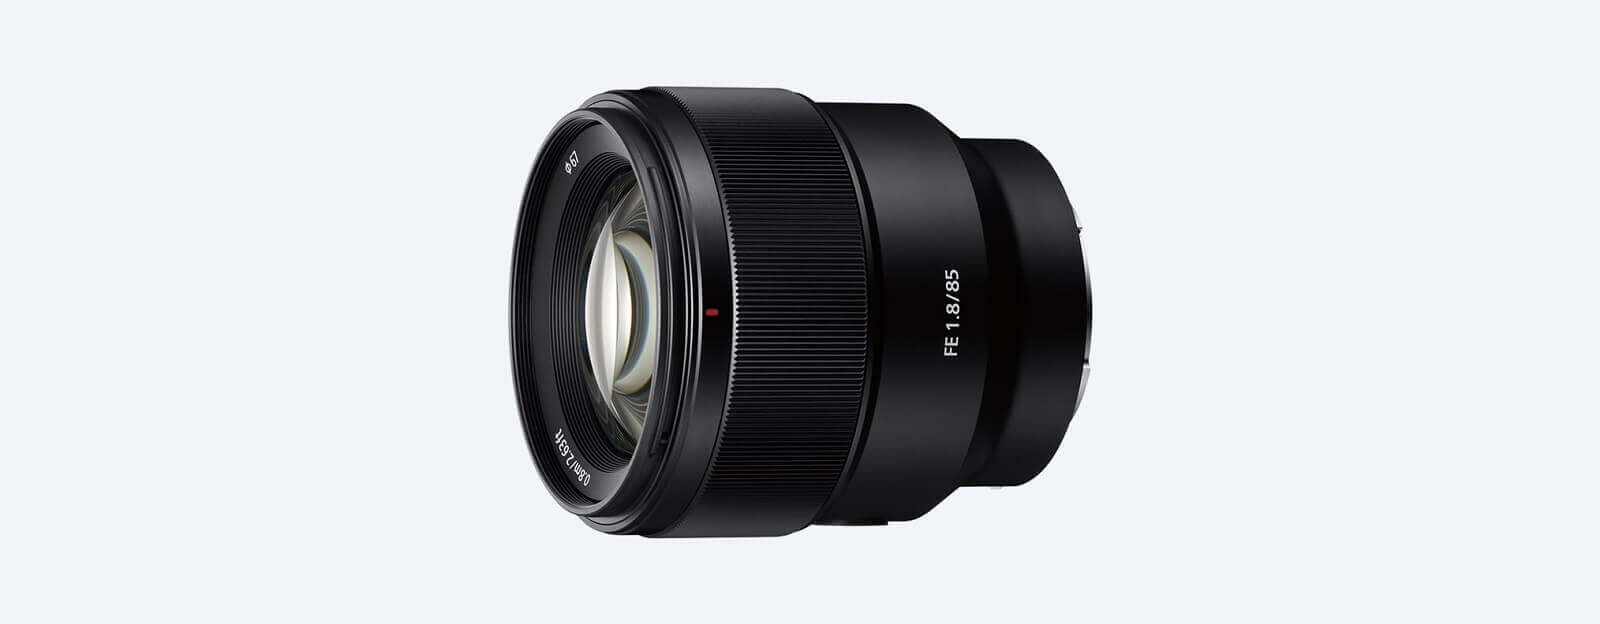 What is the Best Lens for Portraits - The Sony FE 85mm f1.8